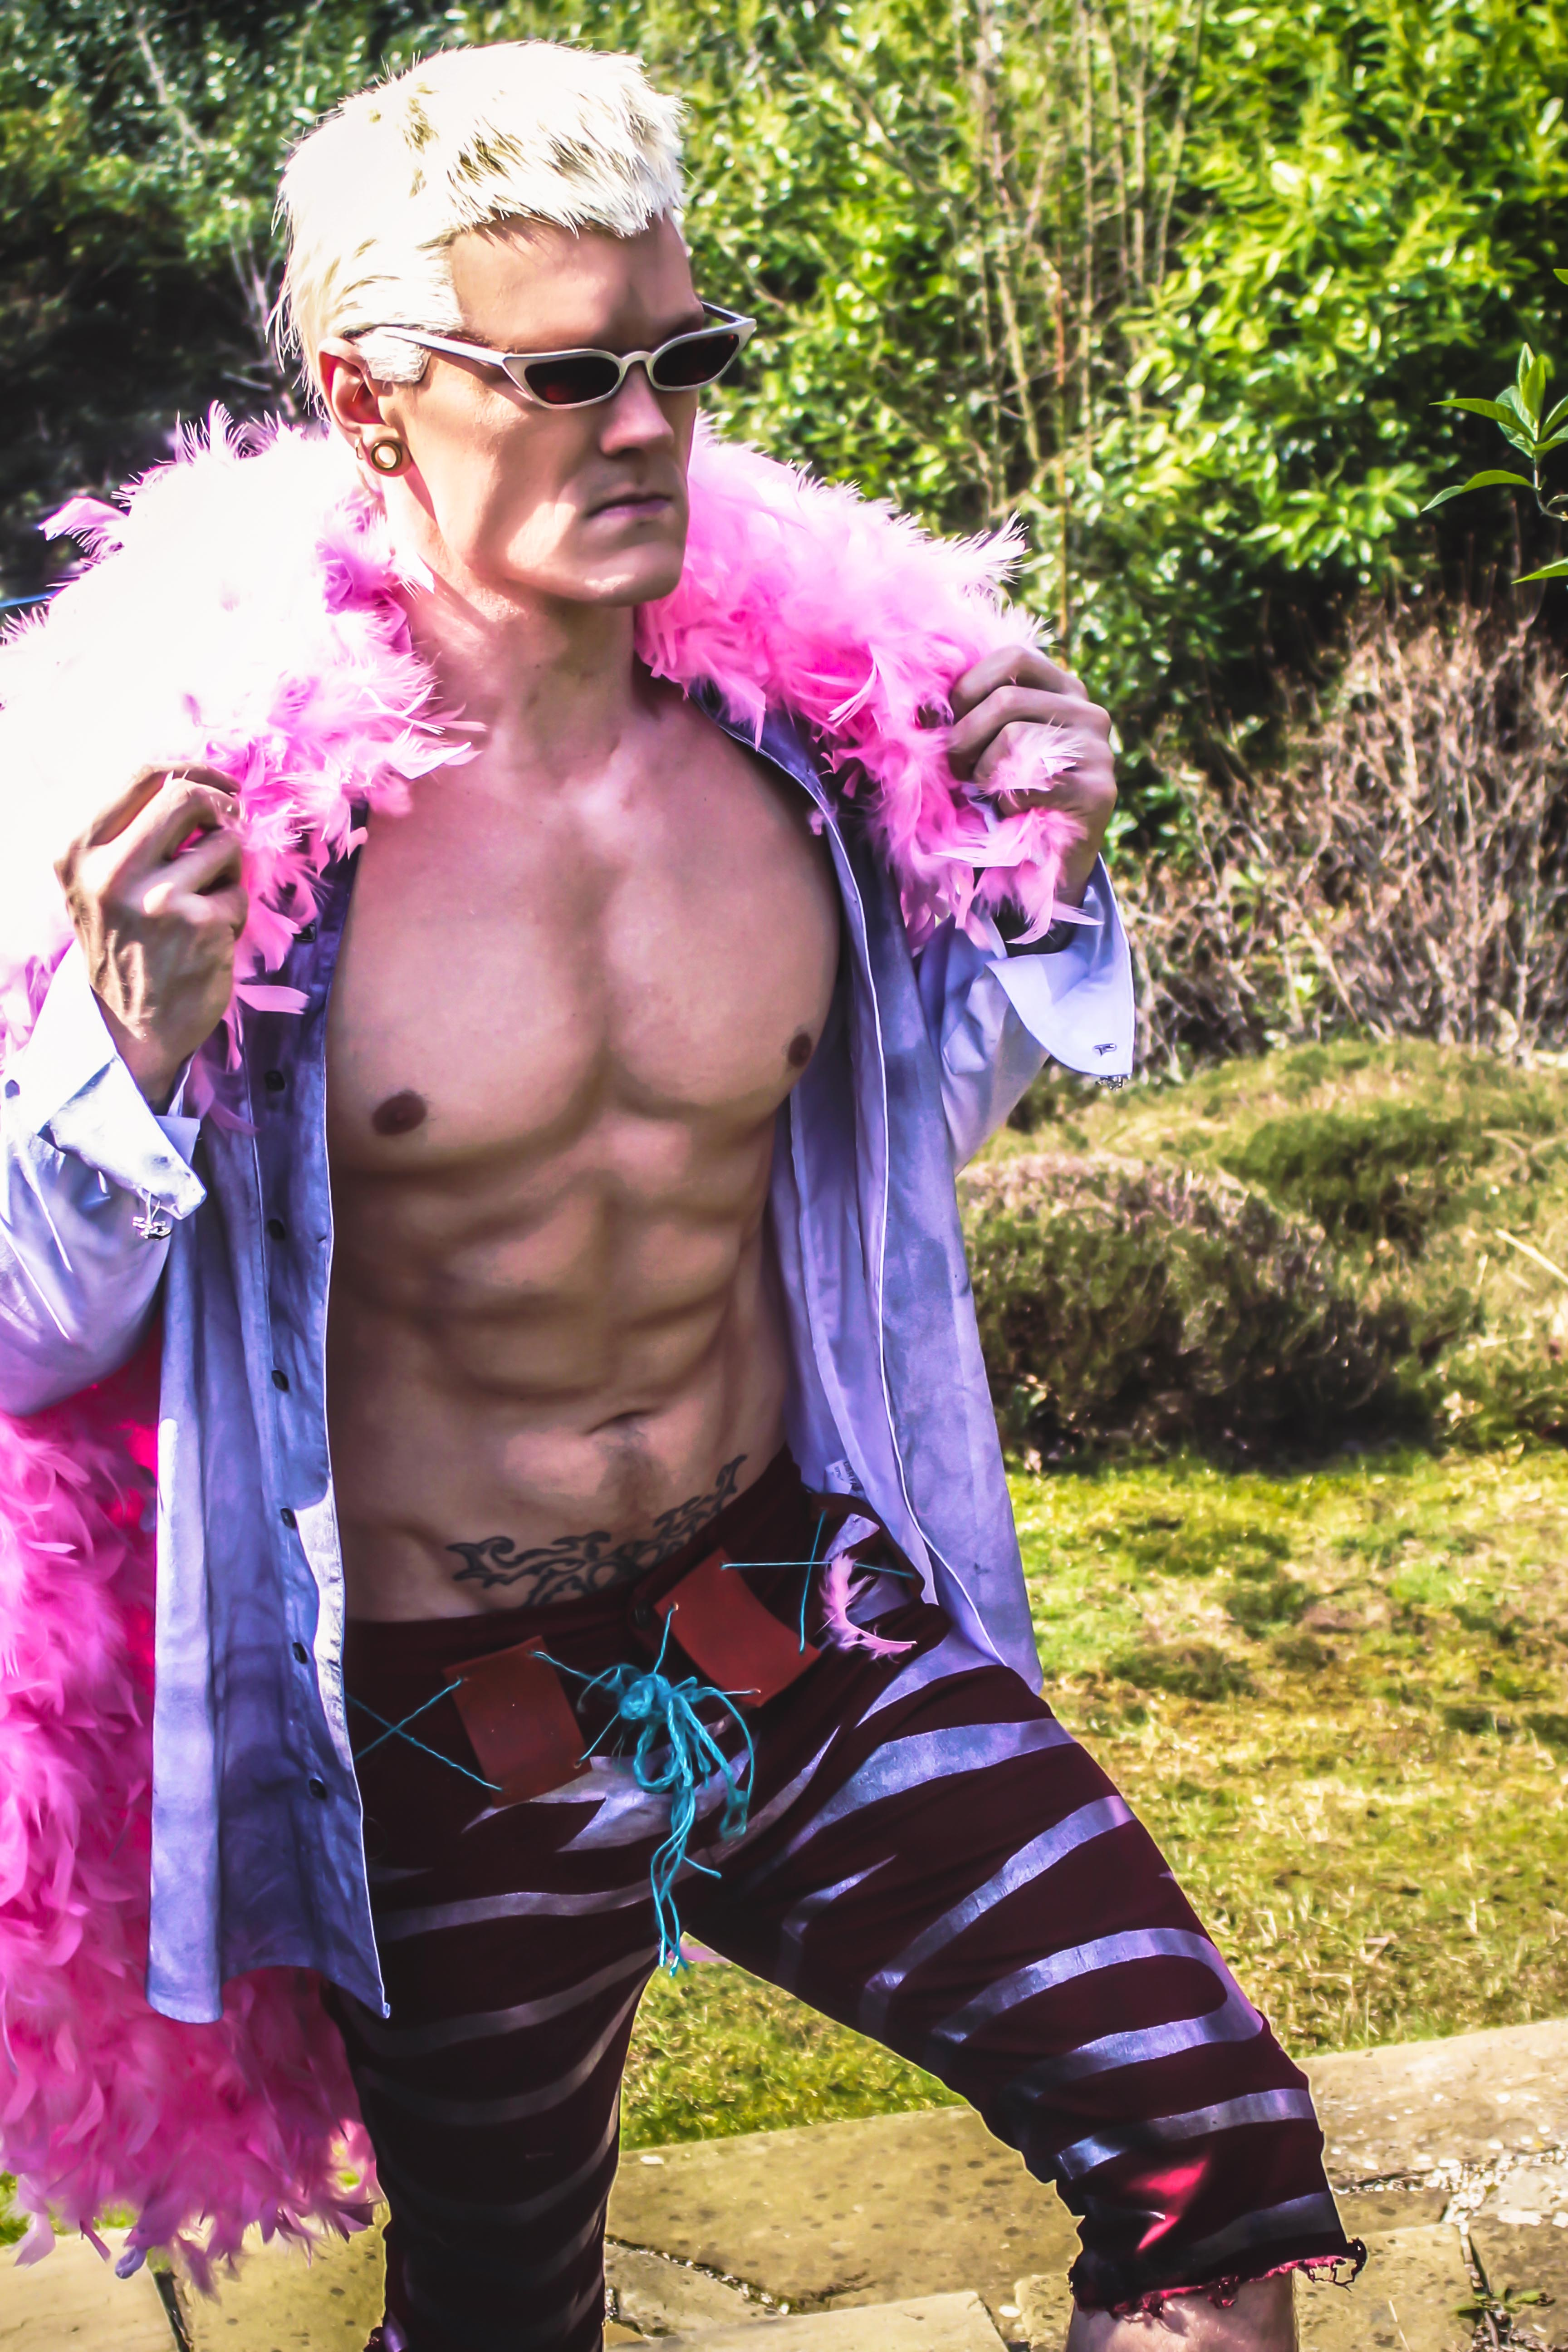 Doflamingo cosplay from One Piece - Anime Workouts and Mindset